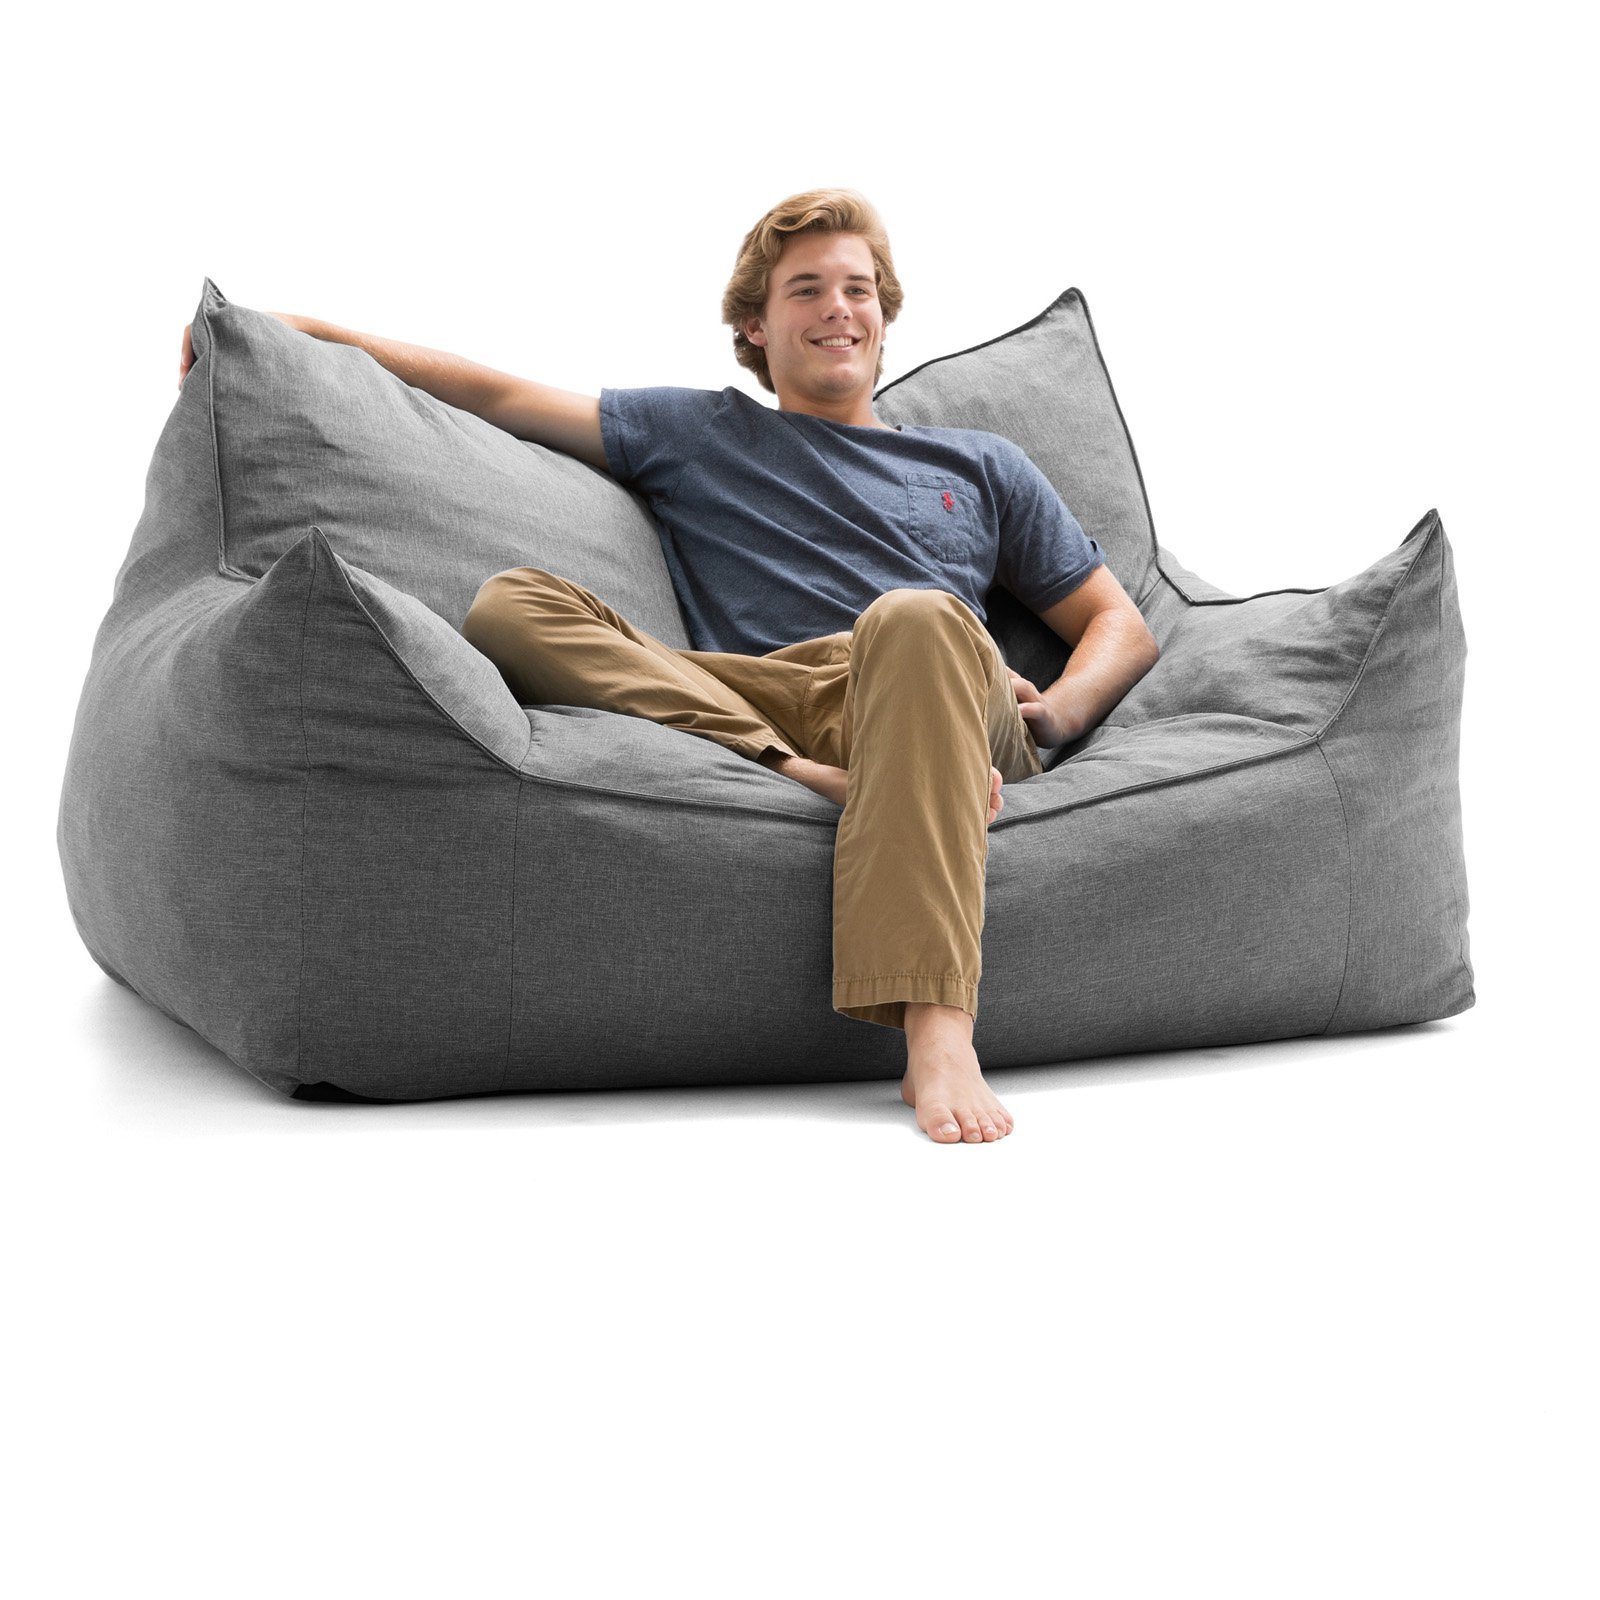 big joe bean bag Lux by Big Joe Imperial Fufton Union Bean Bag   Walmart.com big joe bean bag